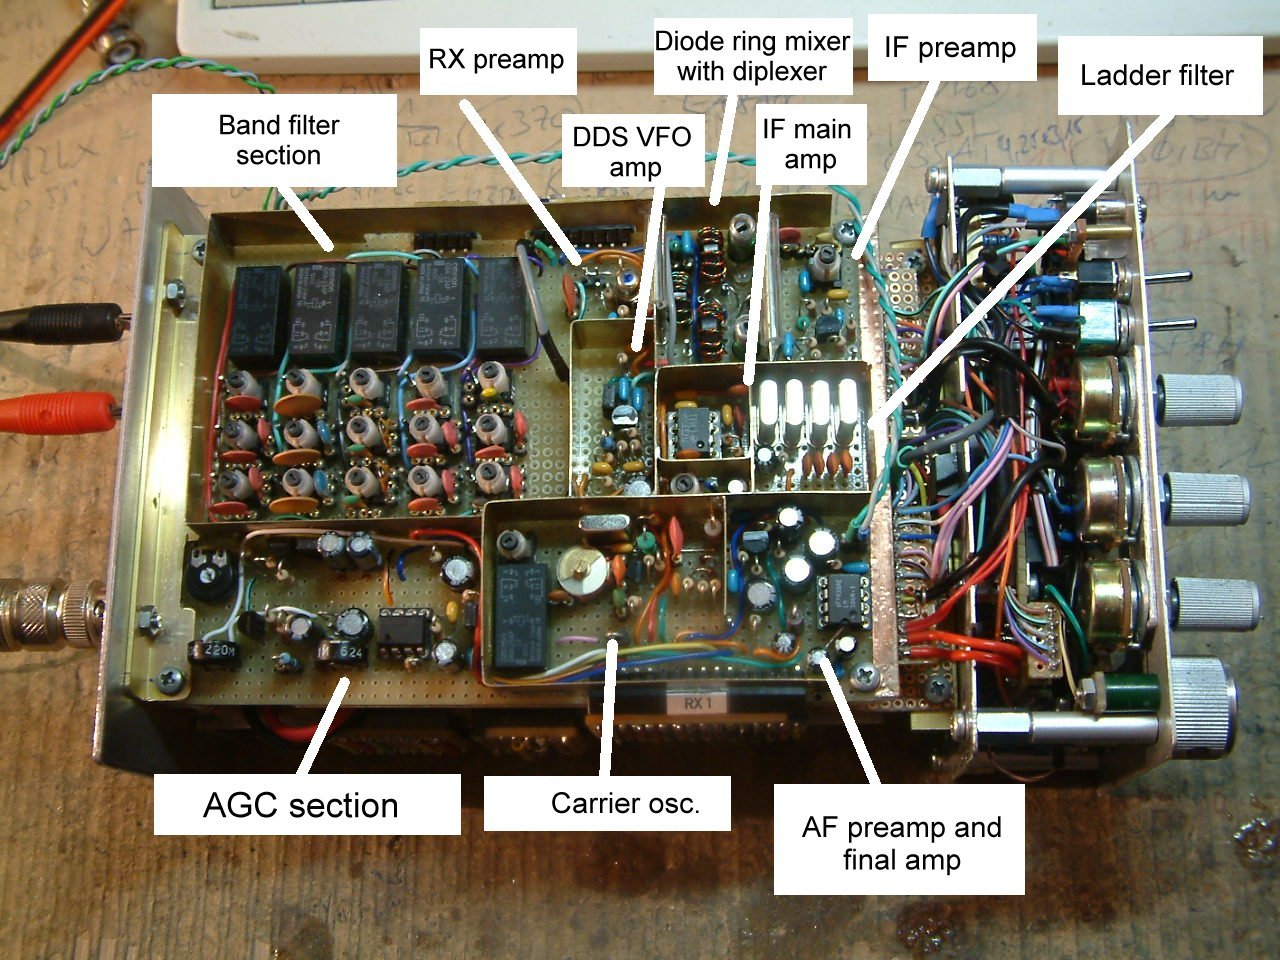 Receiver section for 5 band qrp transceiver by DK7IH (Peter Rachow)